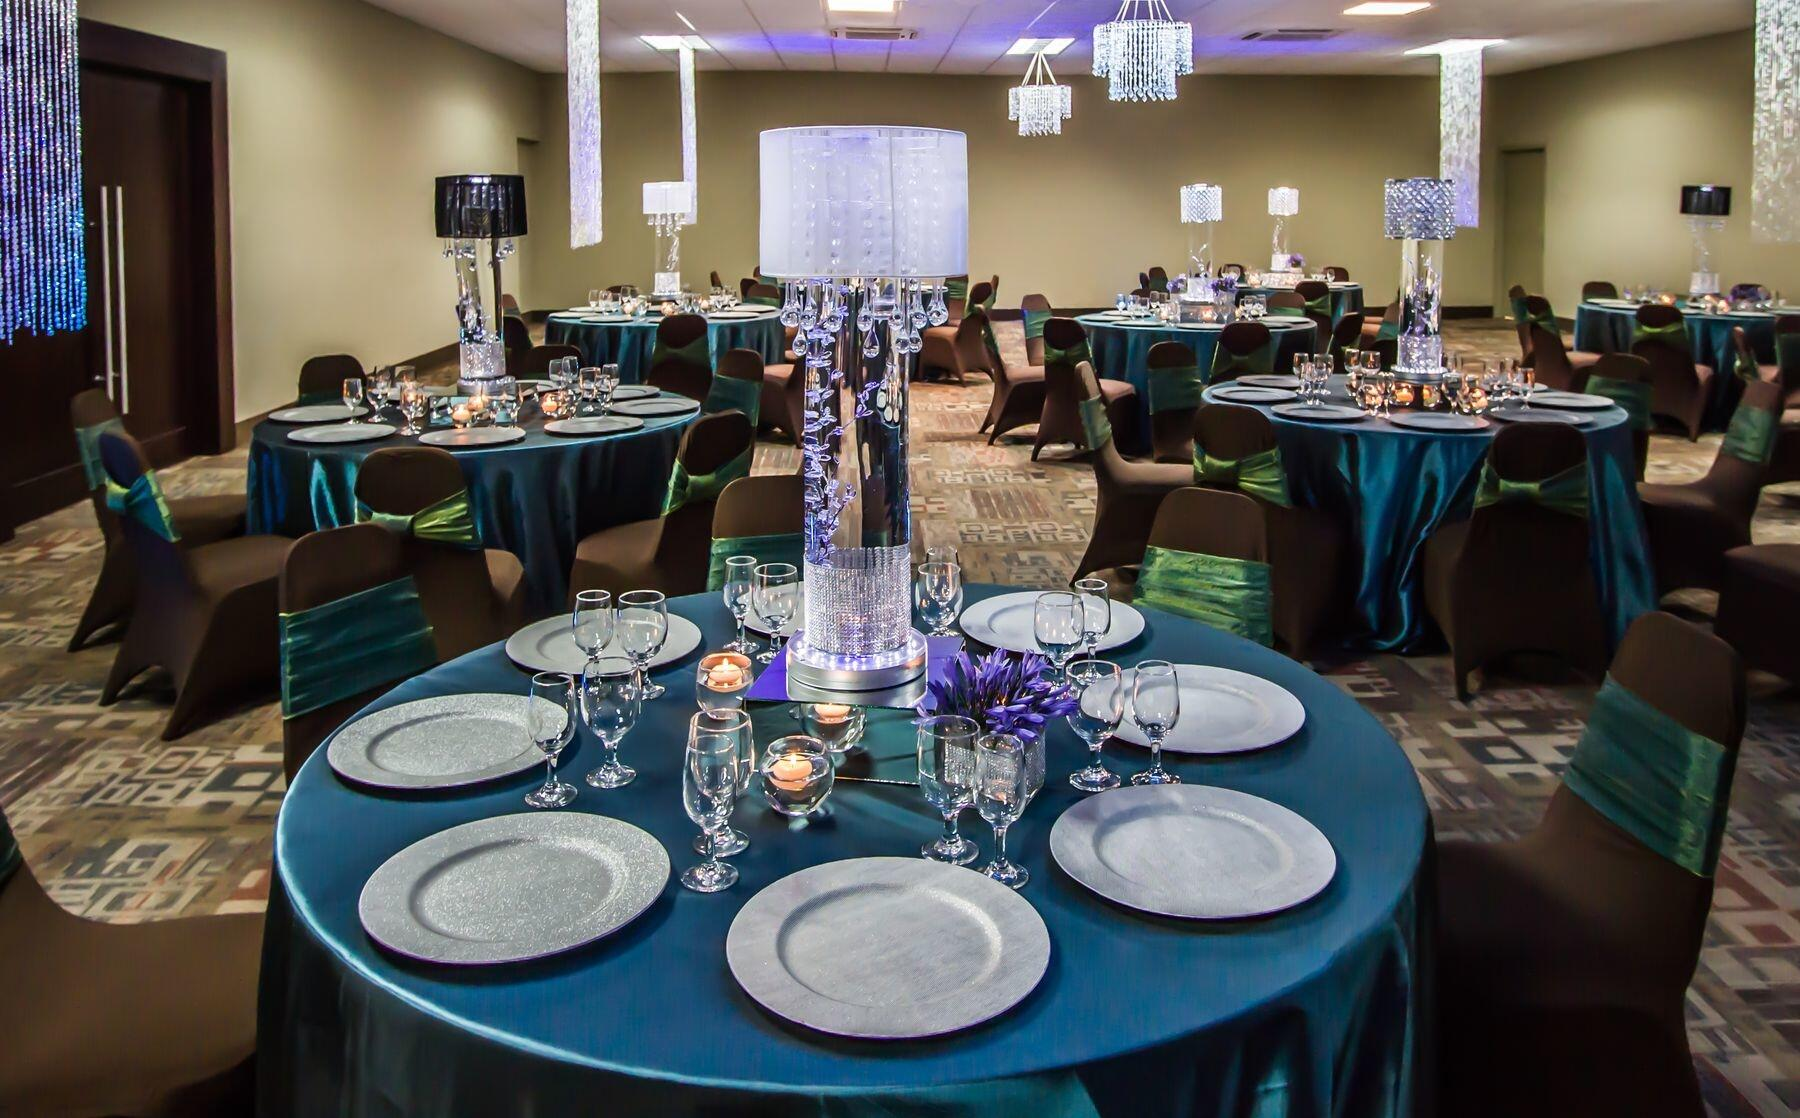 Banquet rounds set with place settings and centerpieces